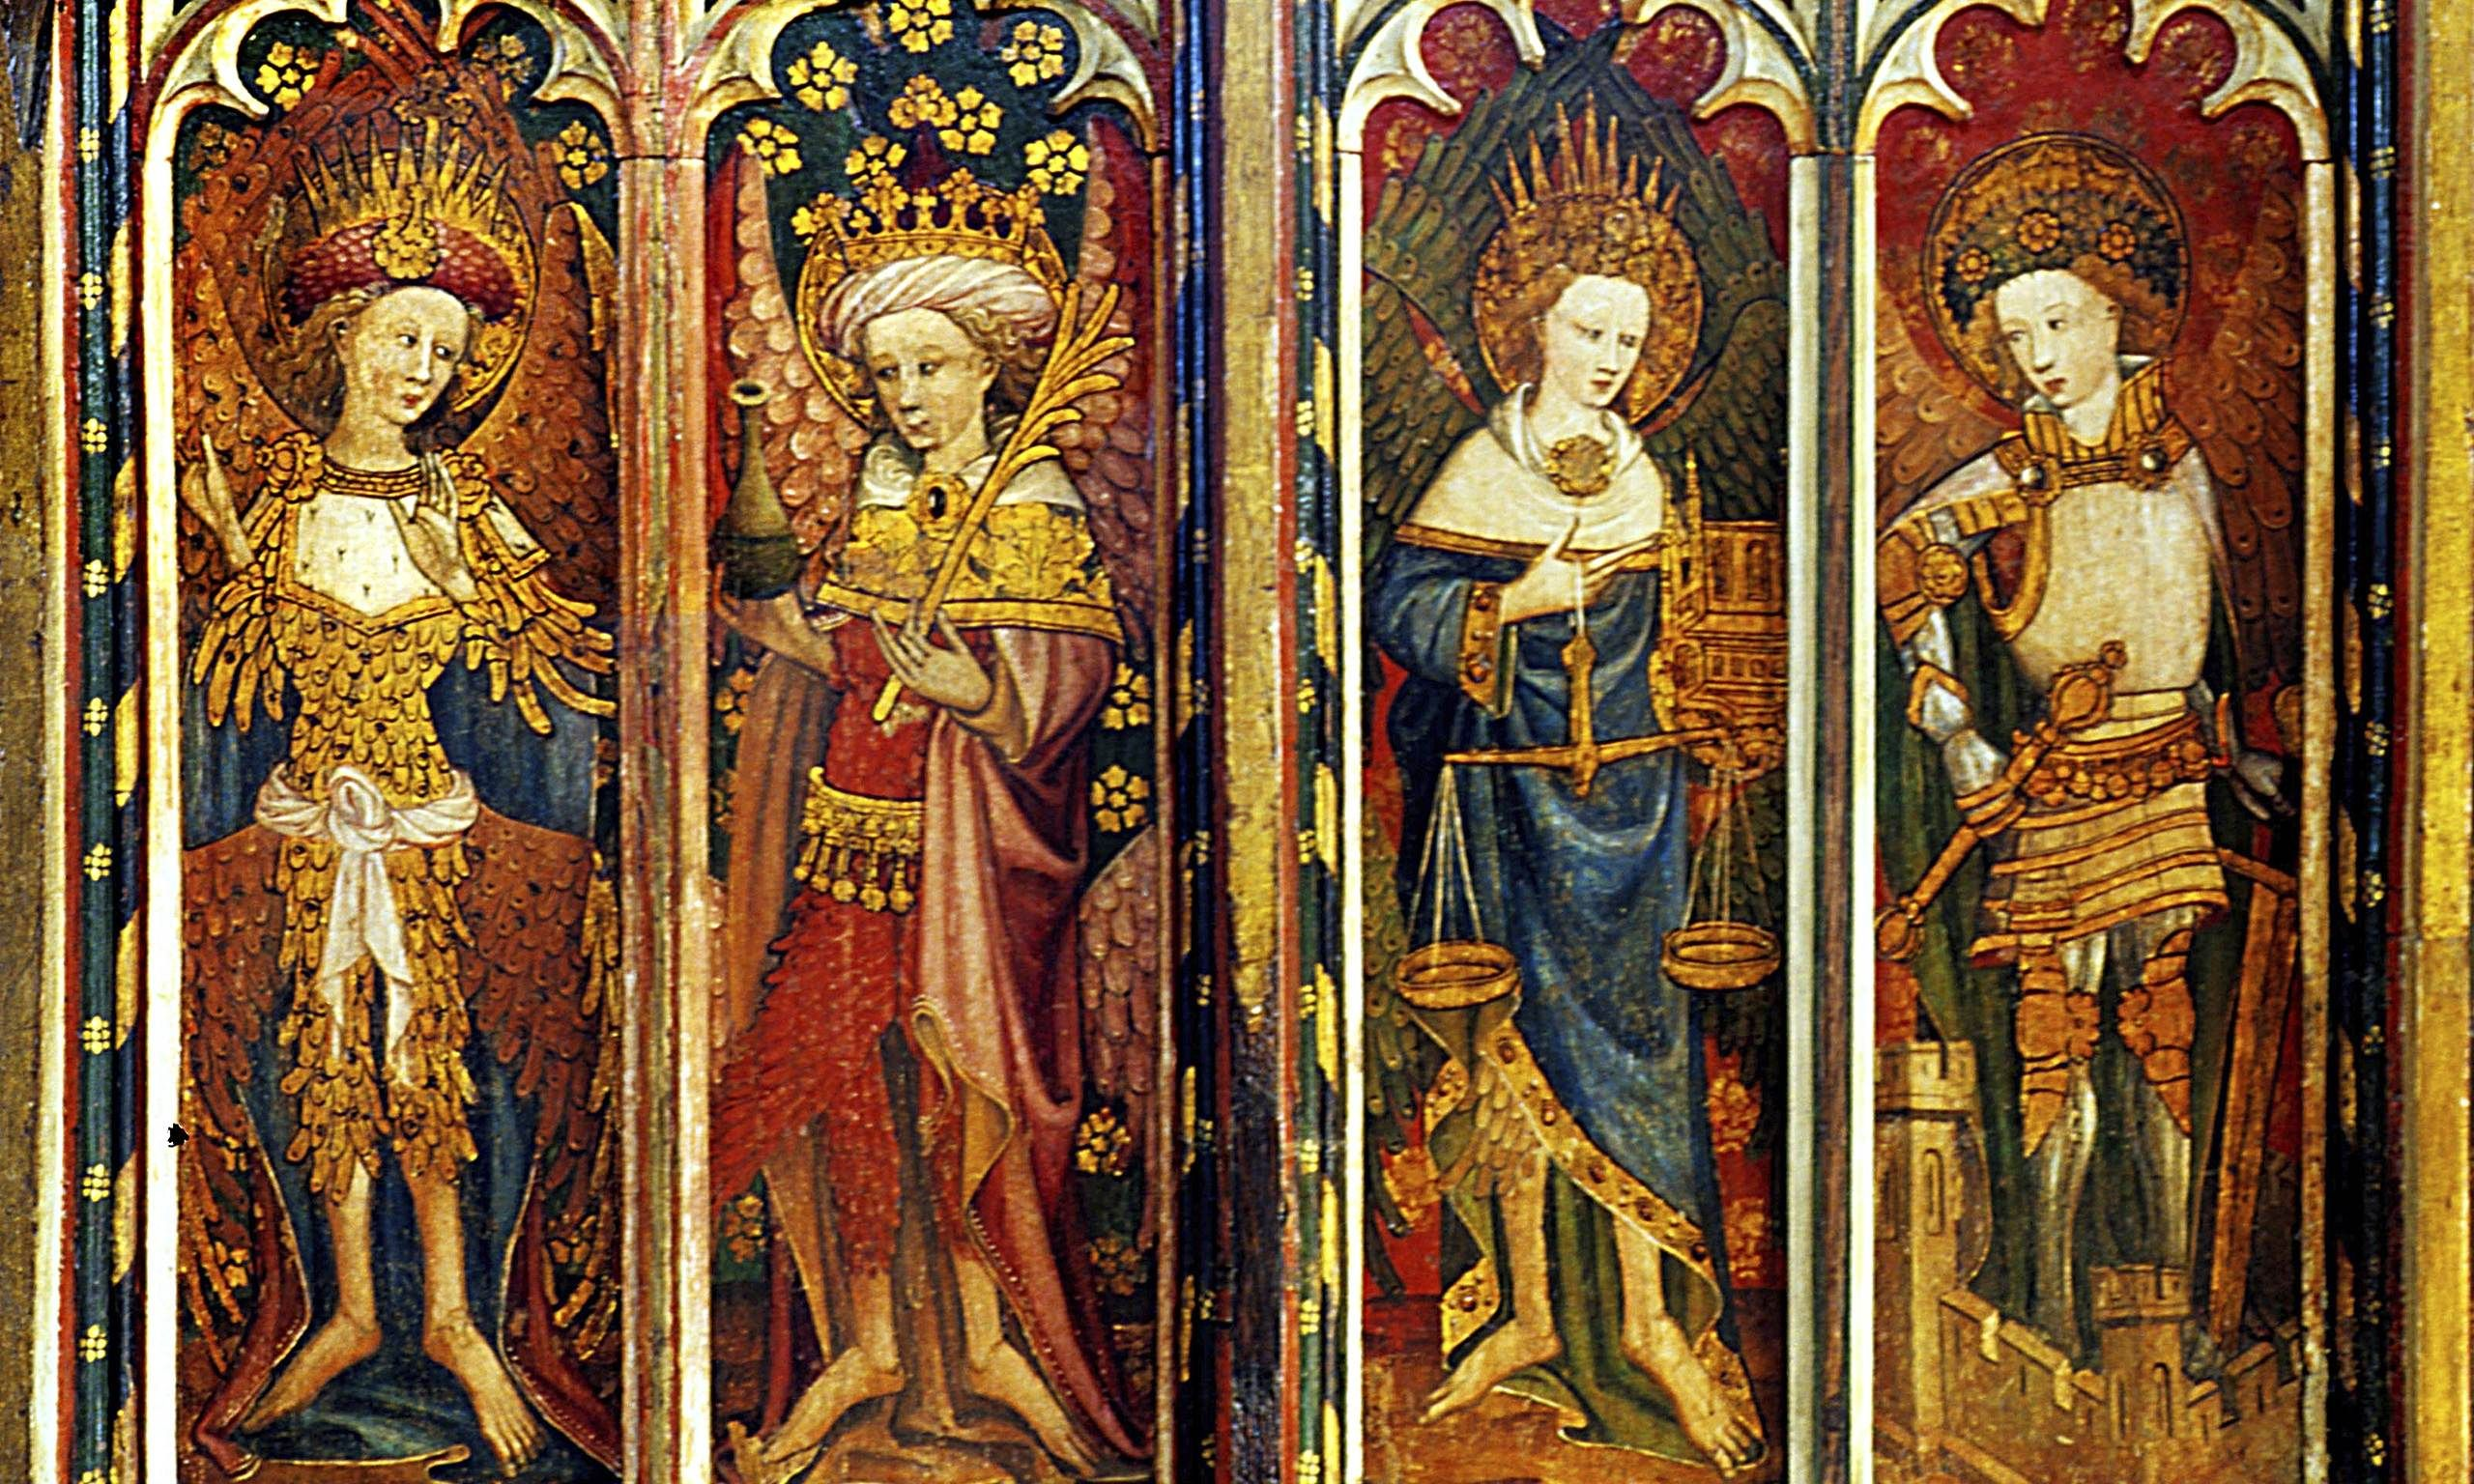 East Anglian rood screens decaying as churches struggle